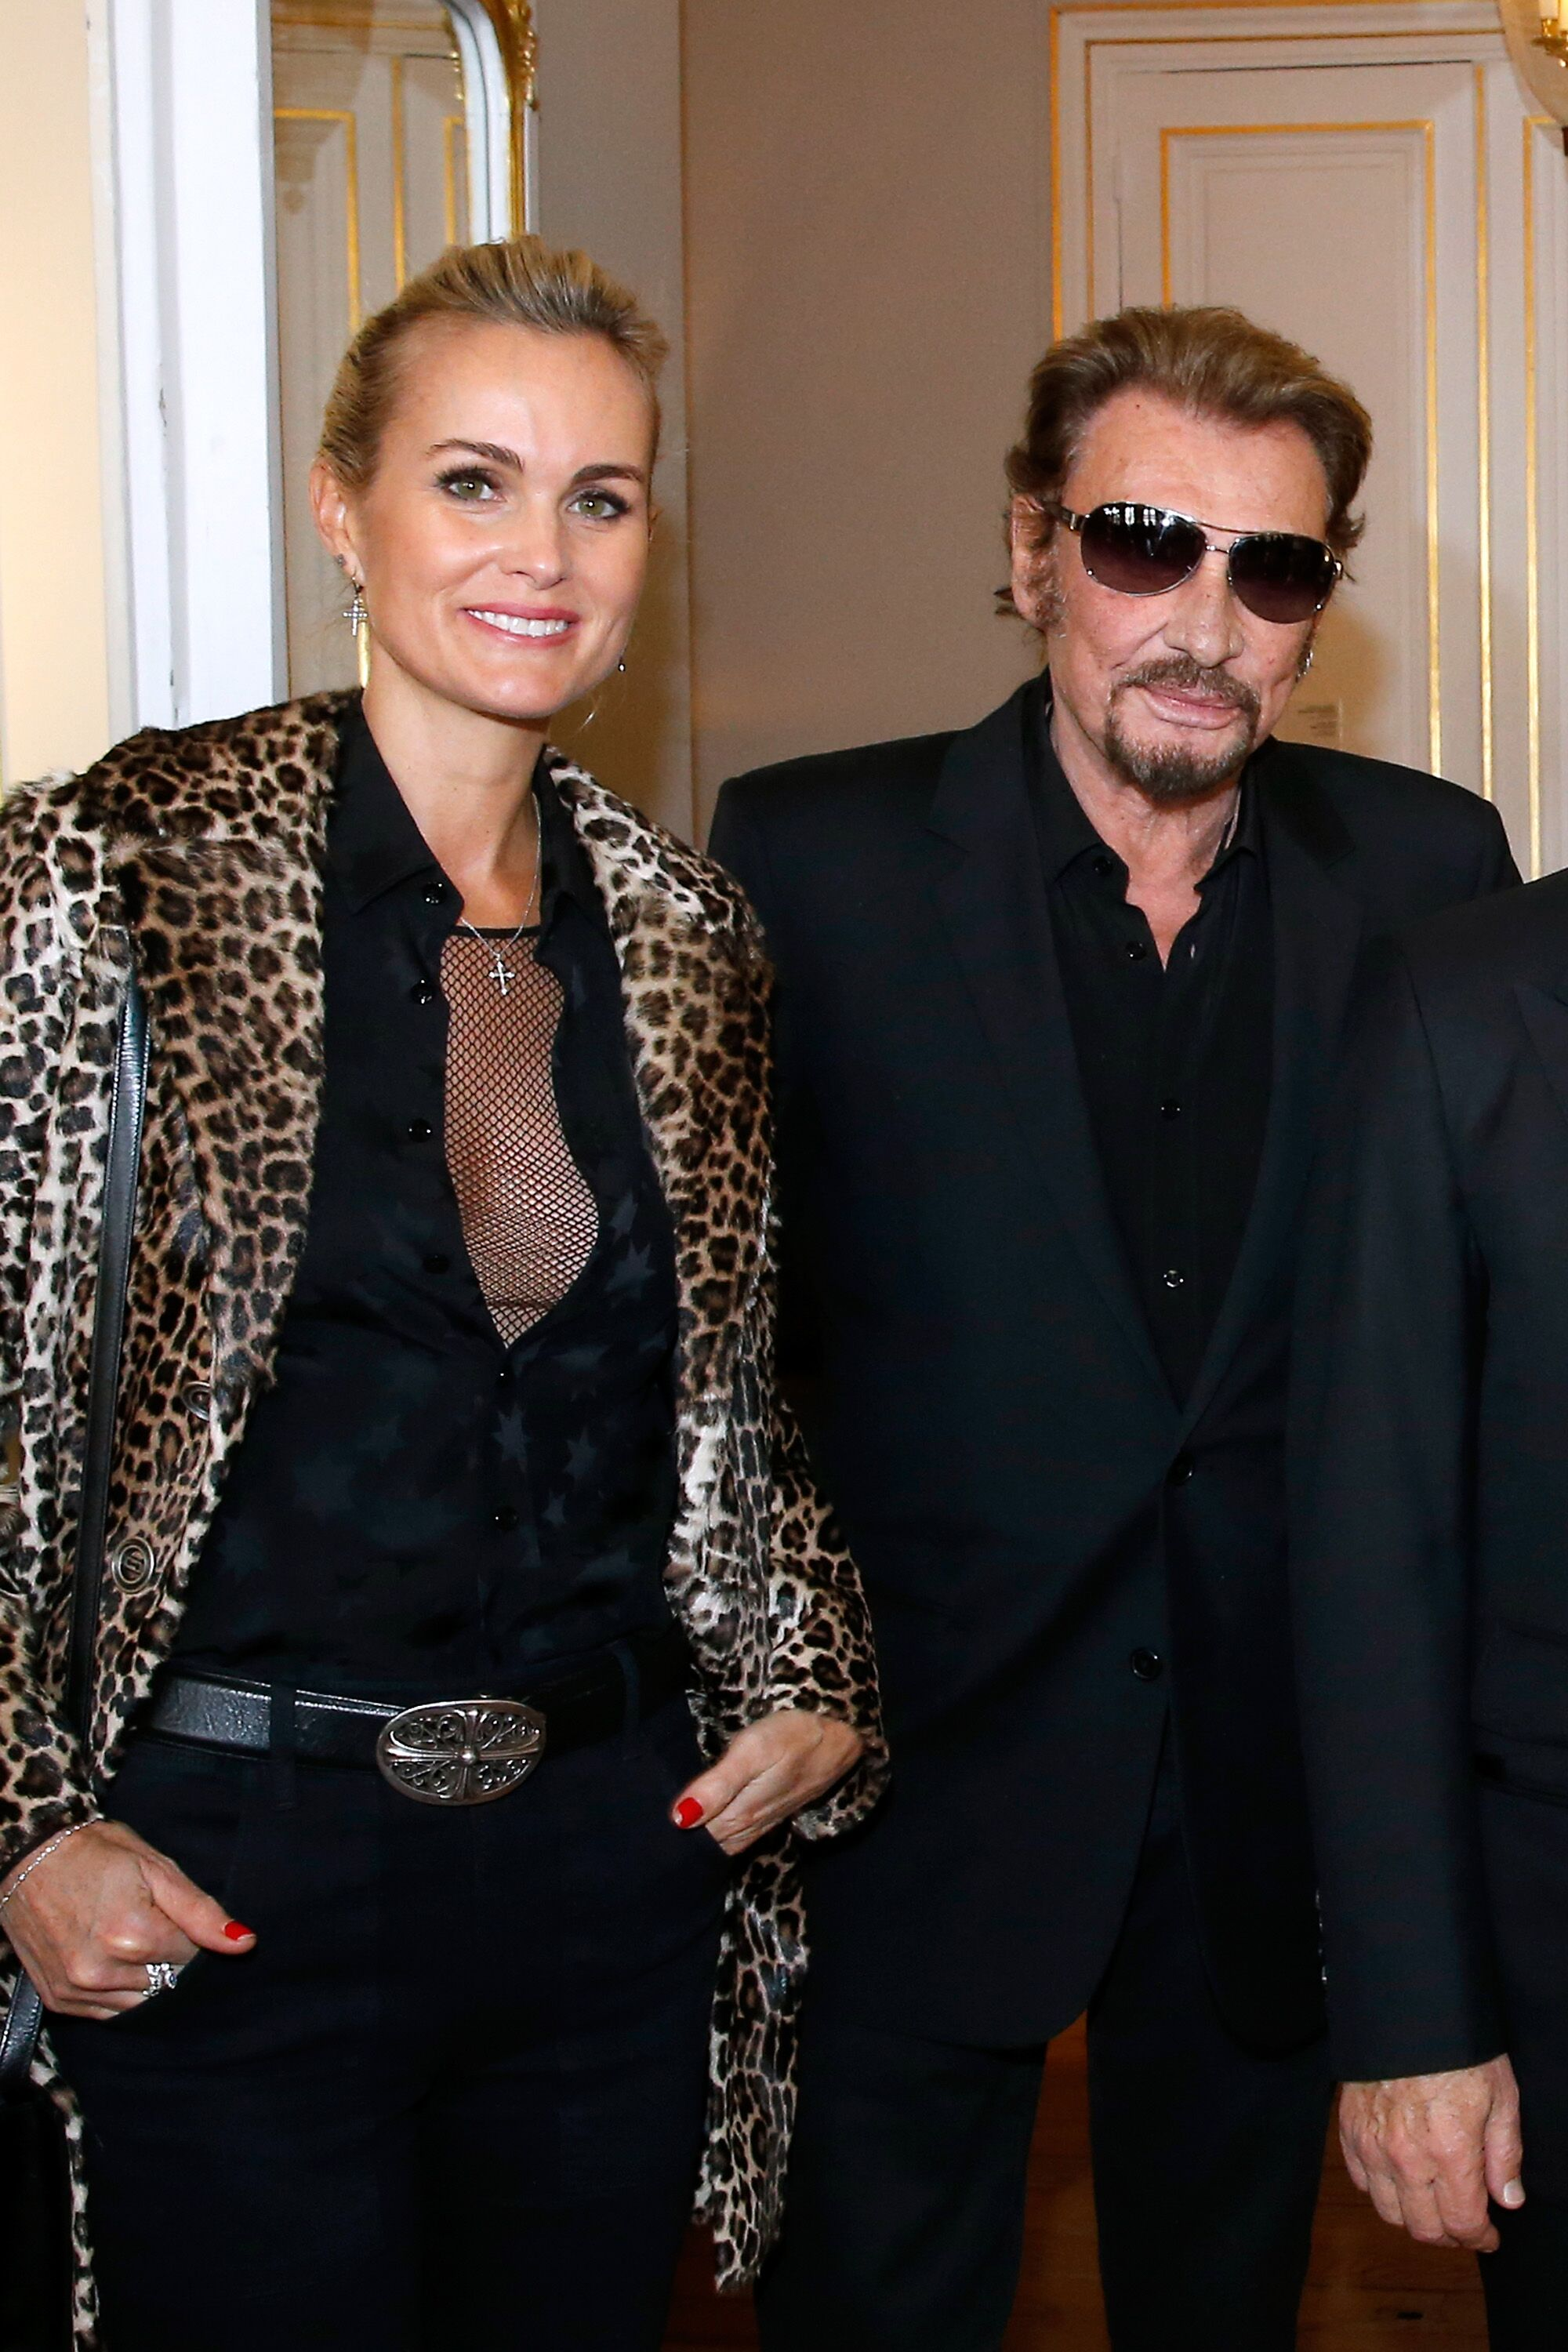 Johnny Hallyday et son épouse Laeticia assistent à Harvey Keitel qui reçoit la Médaille de Commandeur des Arts à Paris, France. | Photo : Getty Images